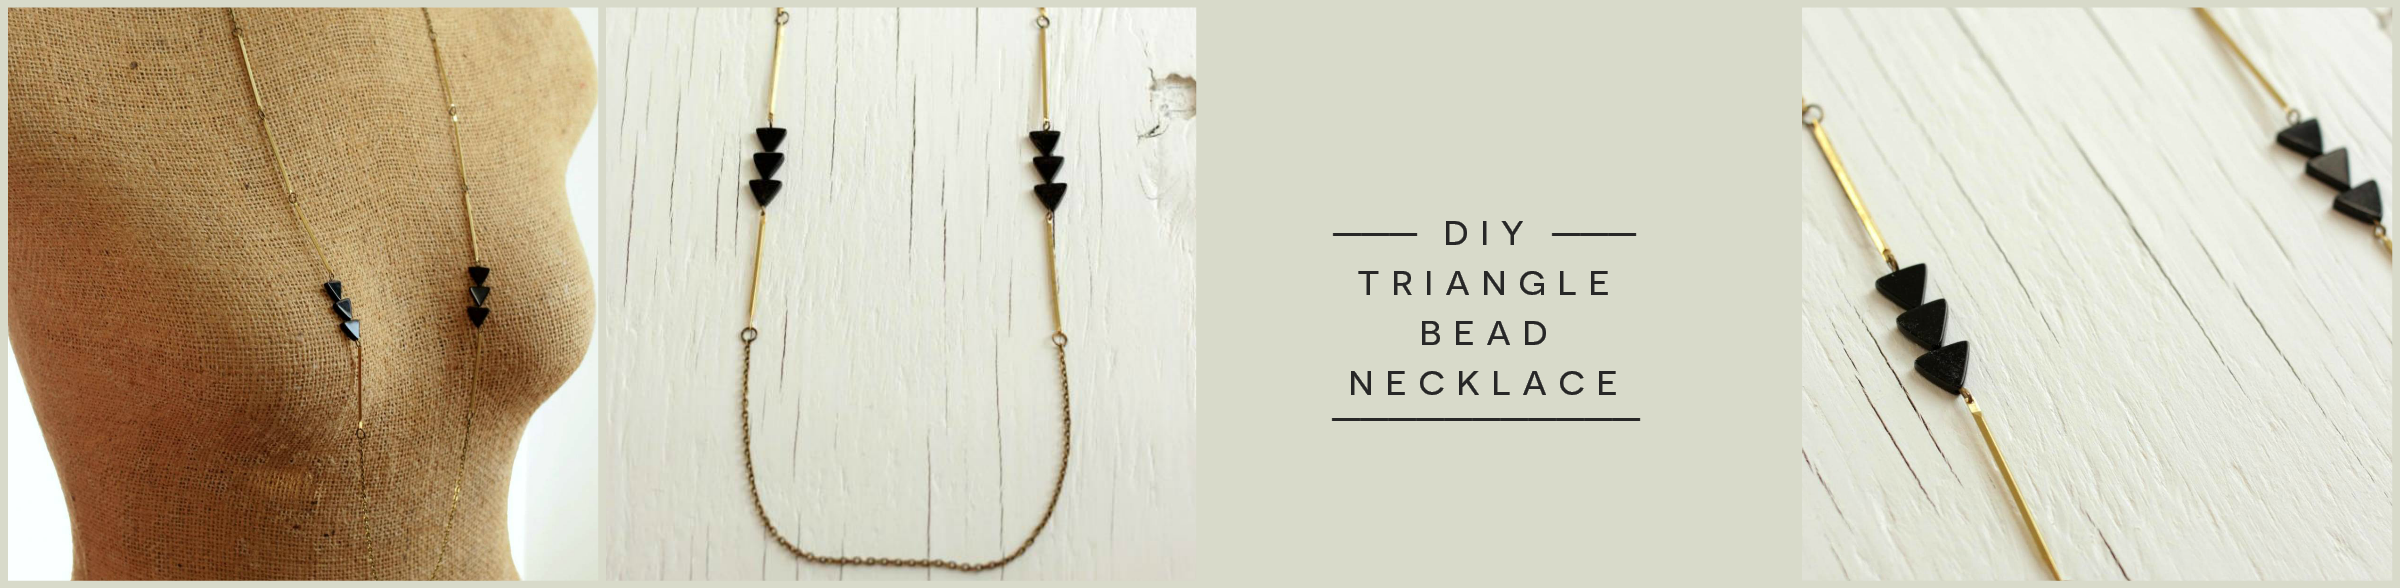 diy necklace tutorial 3